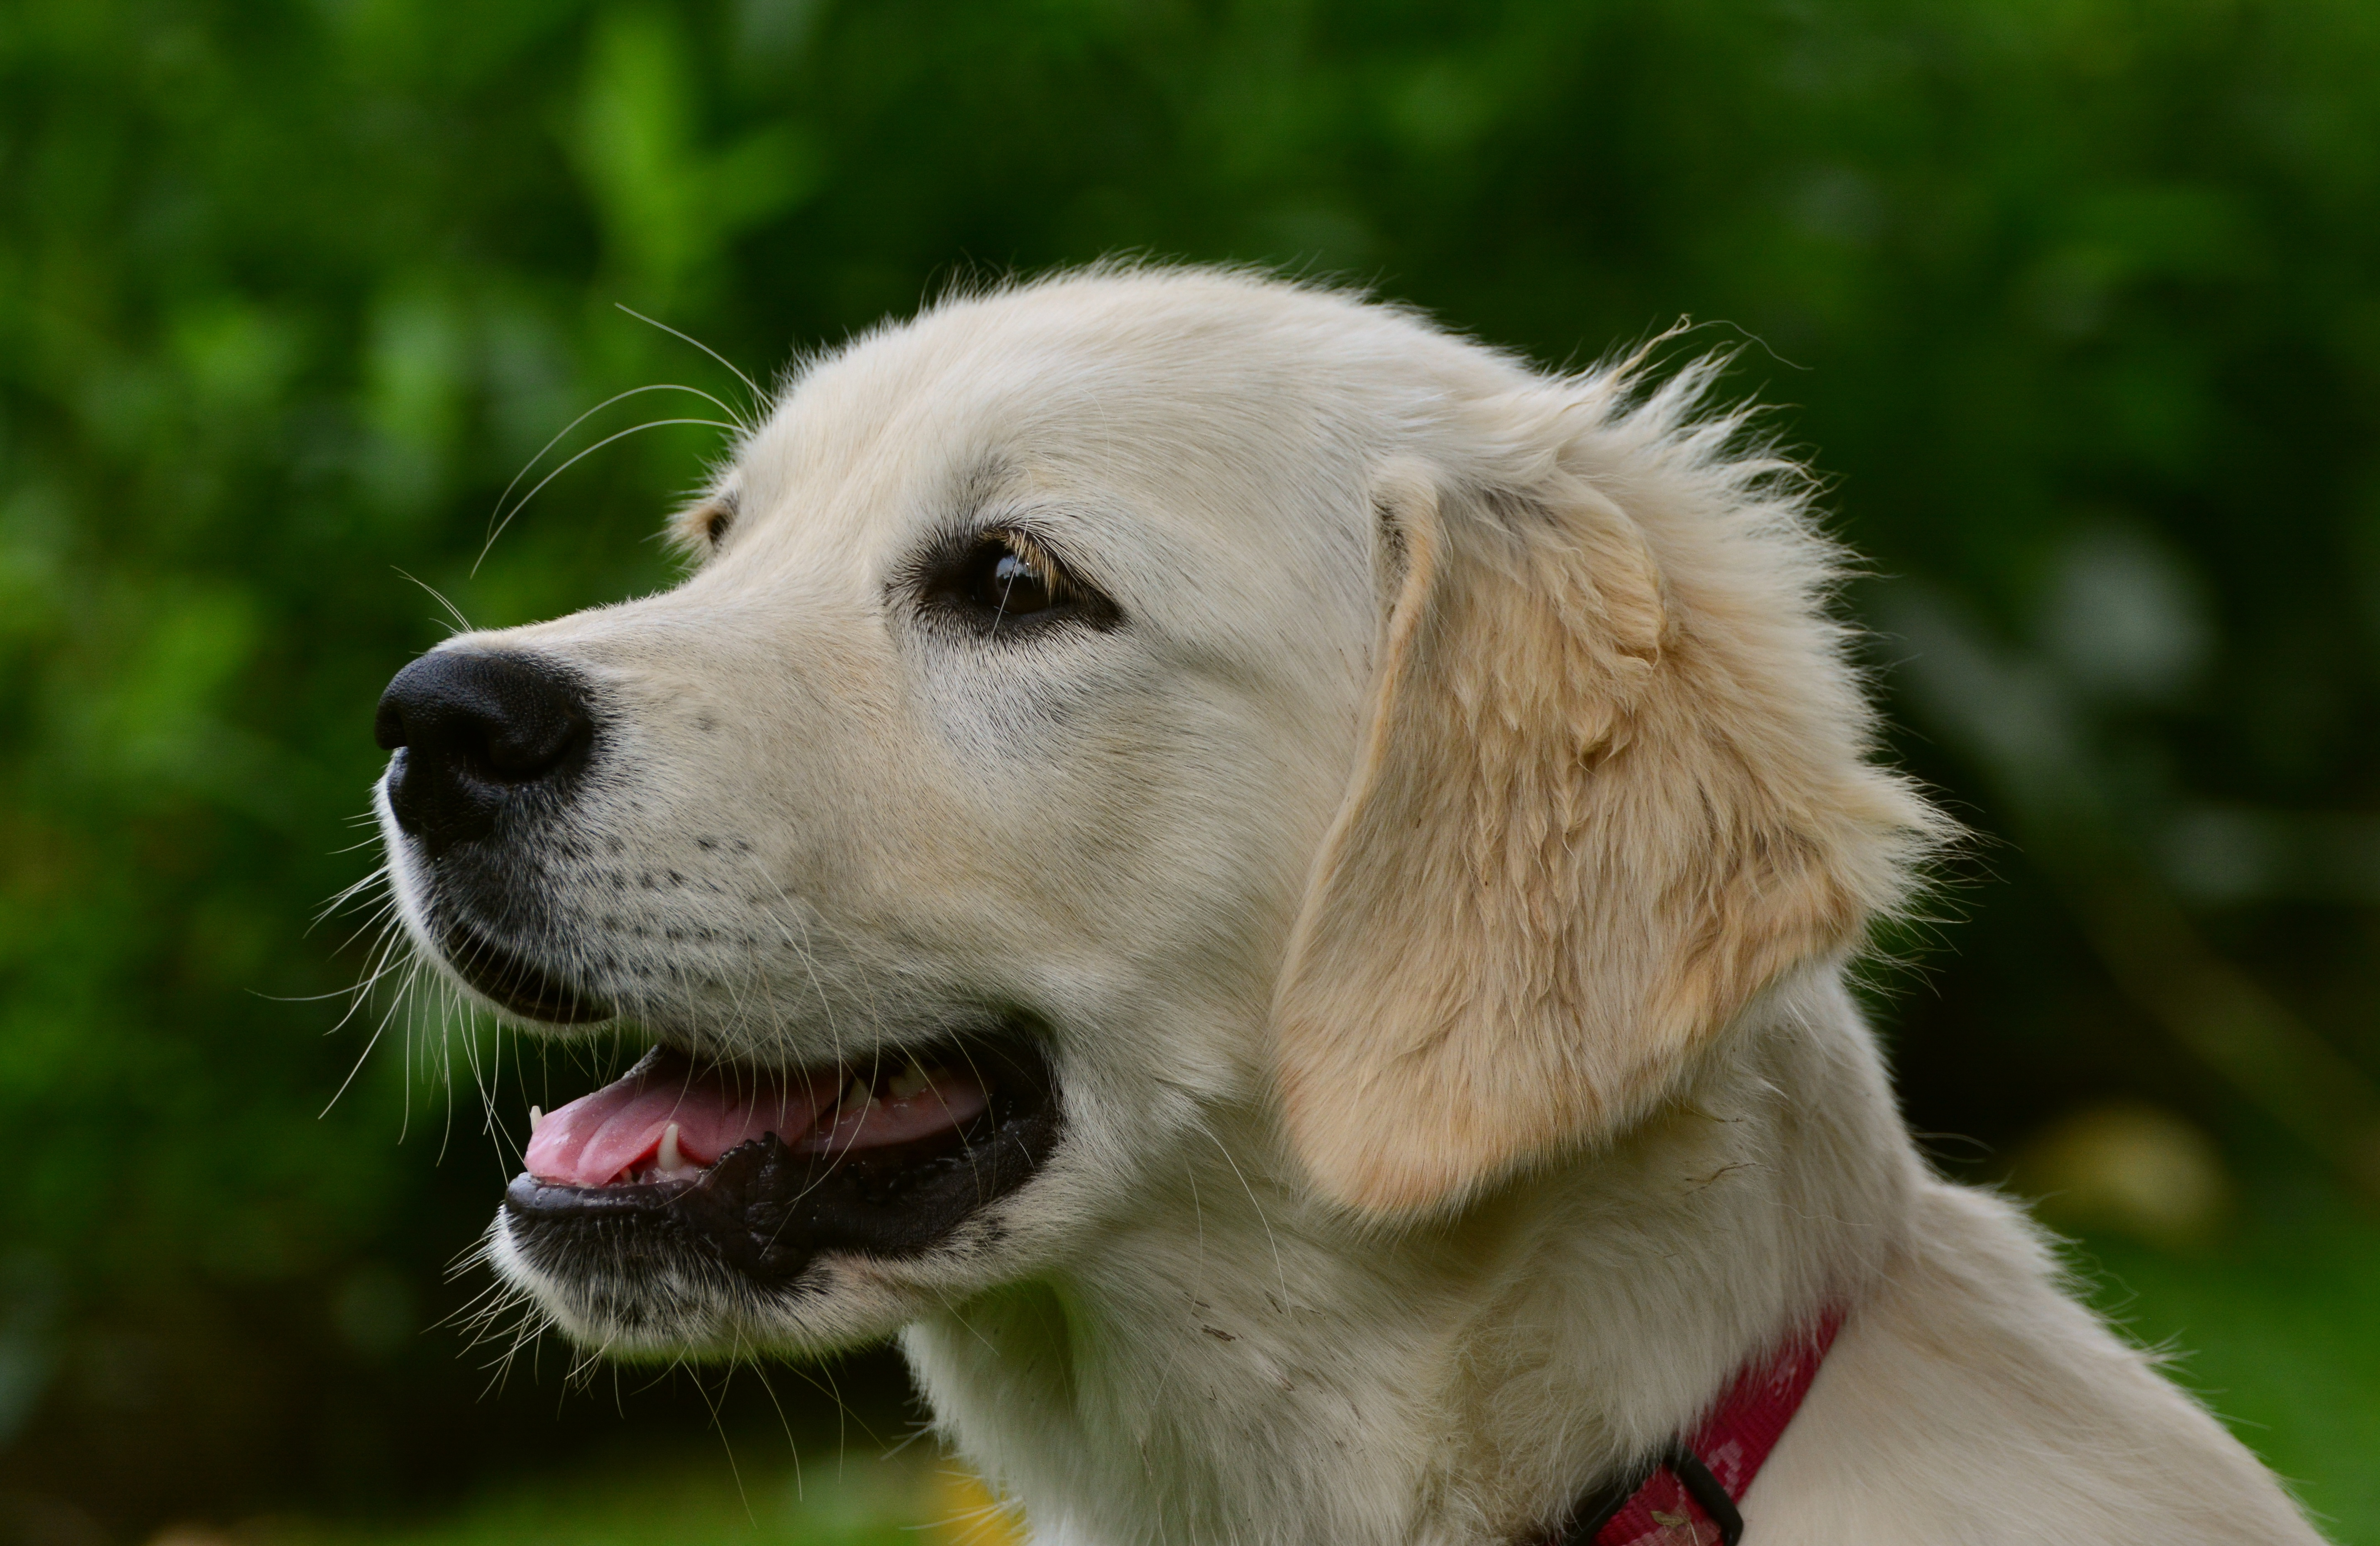 66948 download wallpaper Animals, Labrador, Puppy, Muzzle, Dog screensavers and pictures for free